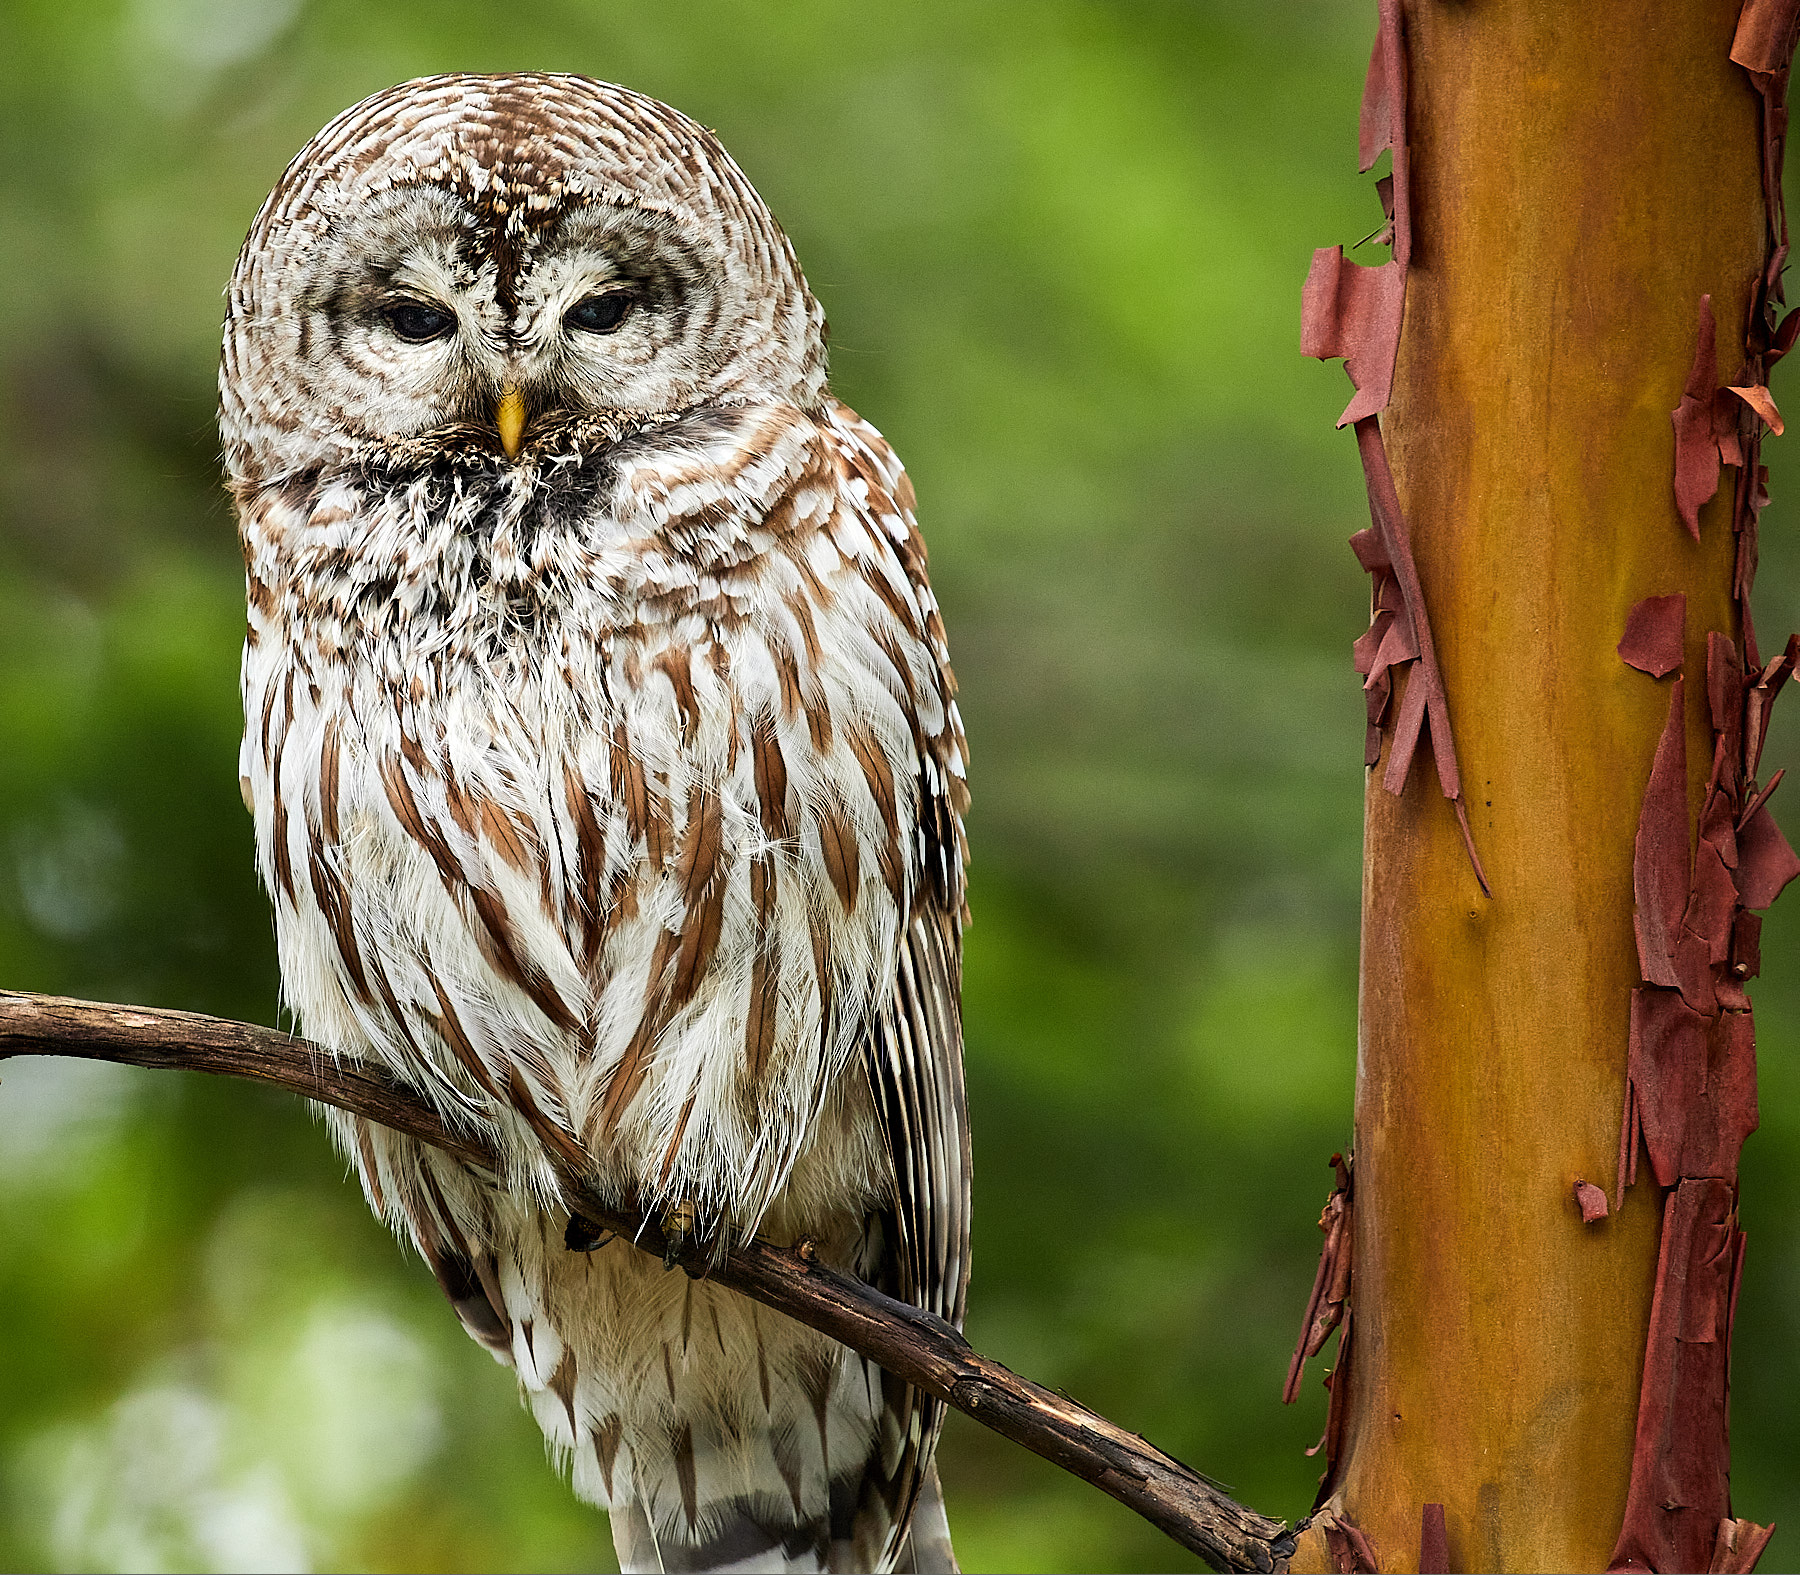 Barred Owl visits us during COVID-19 ©johncameron.ca